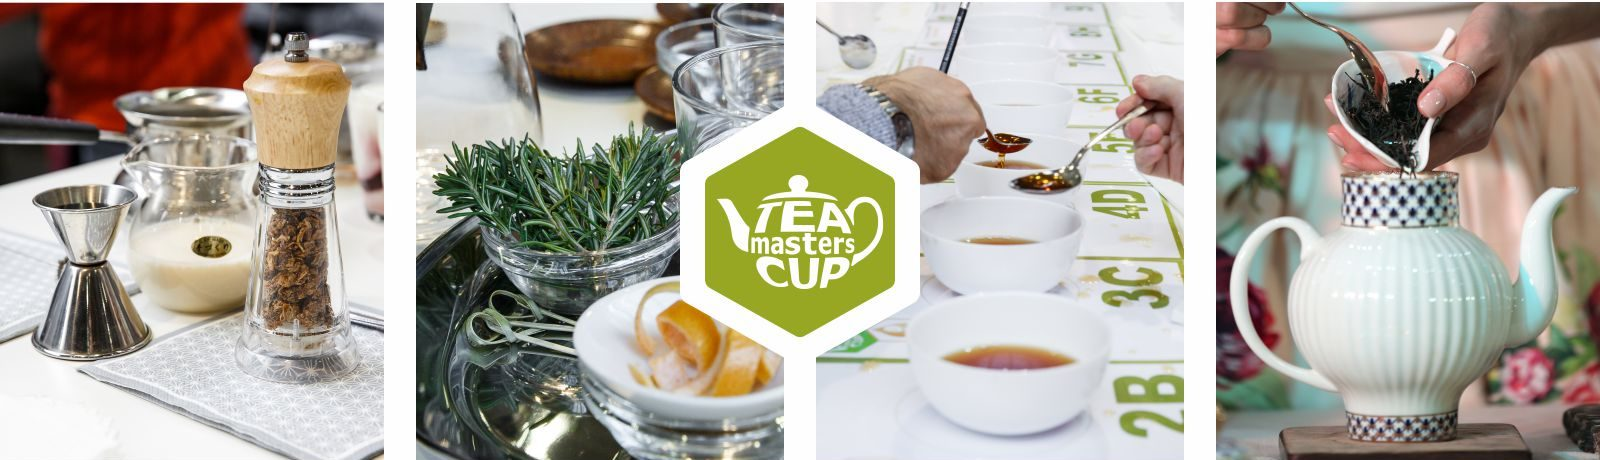 Tea Masters Cup